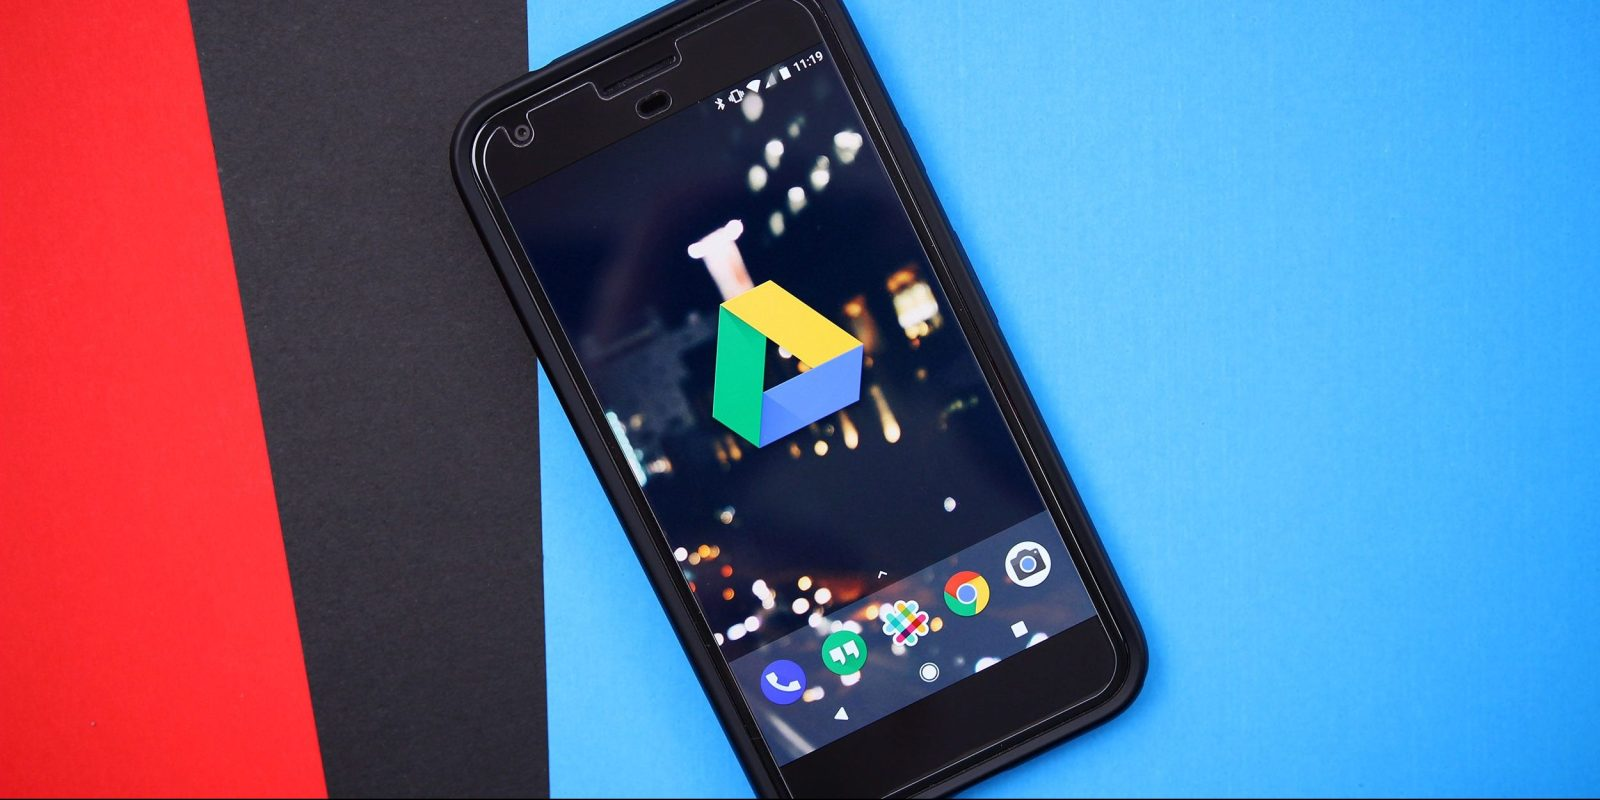 The next version of Android will allow manual Google Drive backups